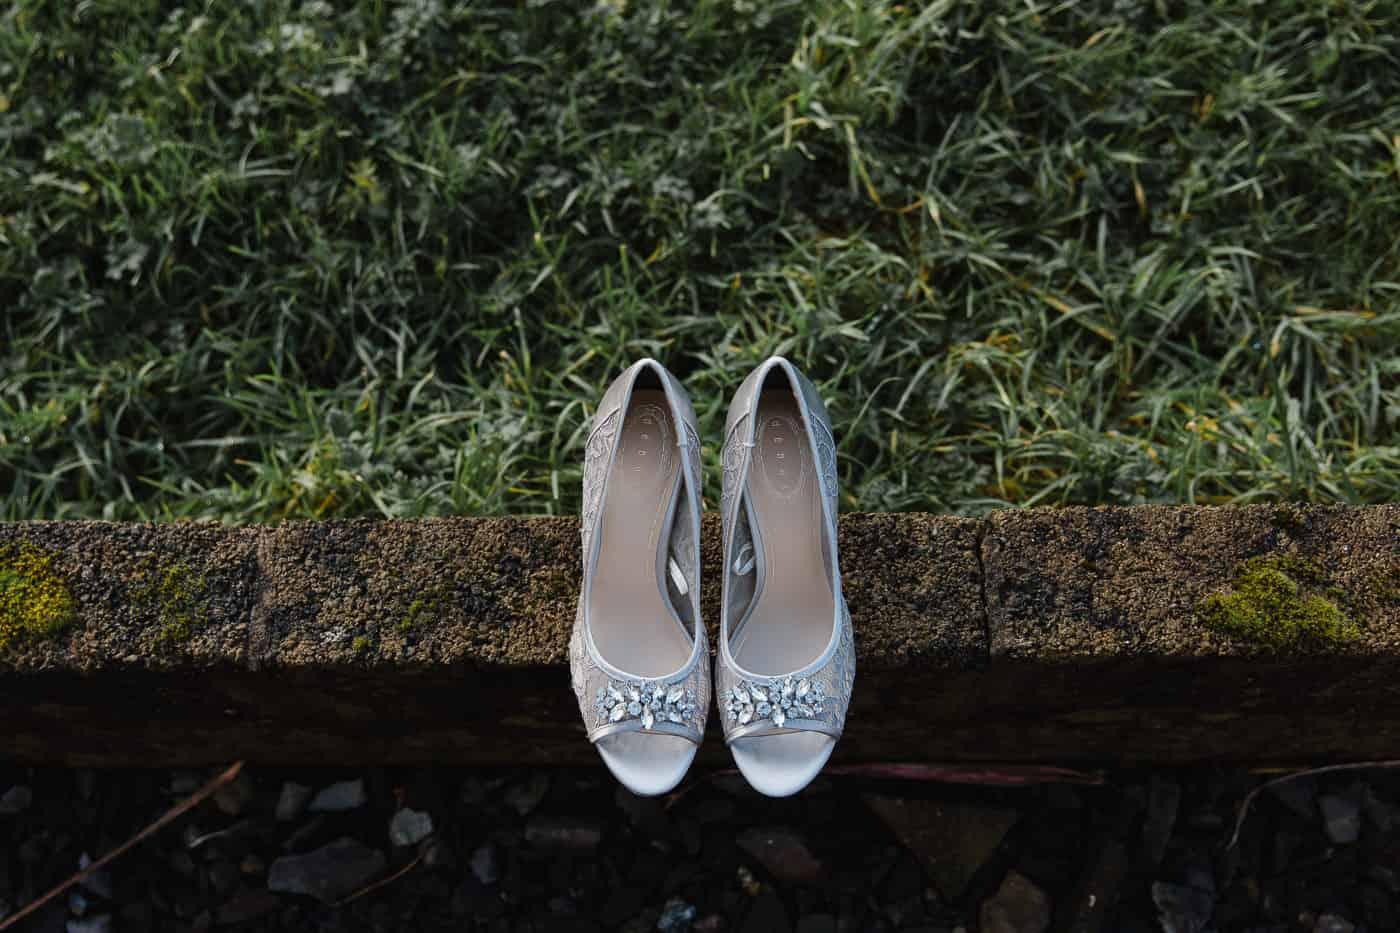 wedding shoes on grass